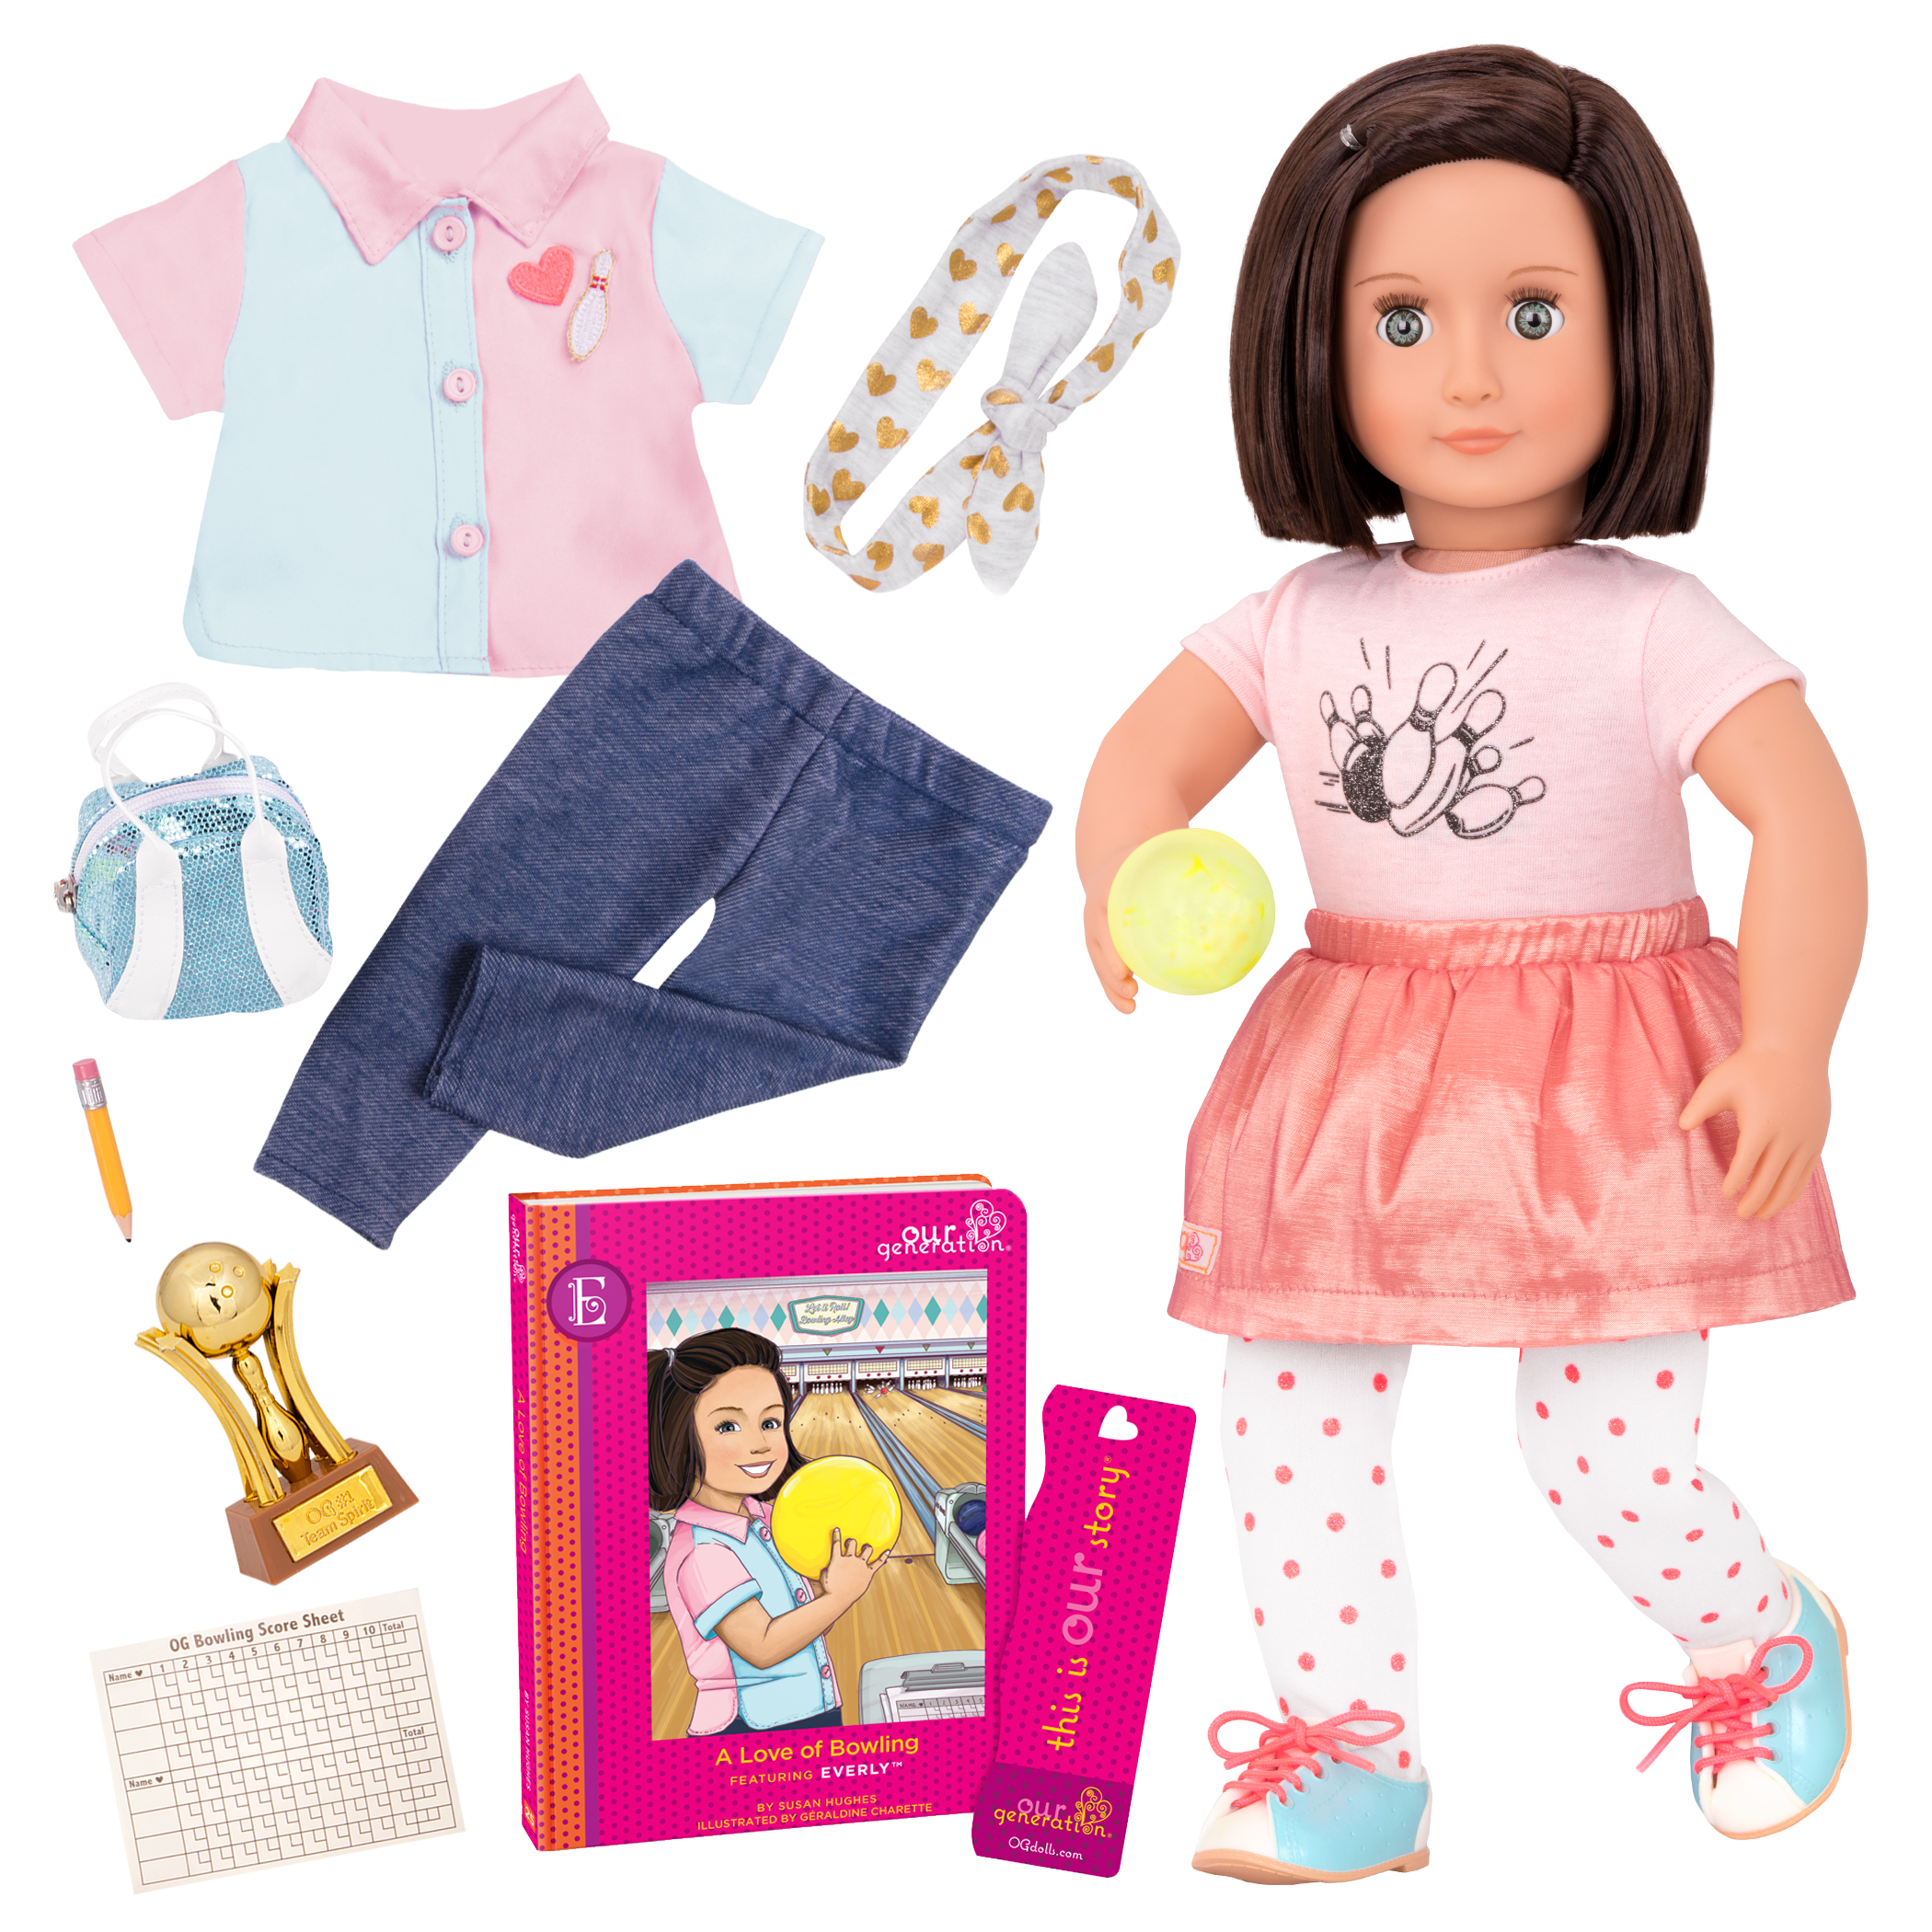 Everly Deluxe 18-inch Bowling Doll